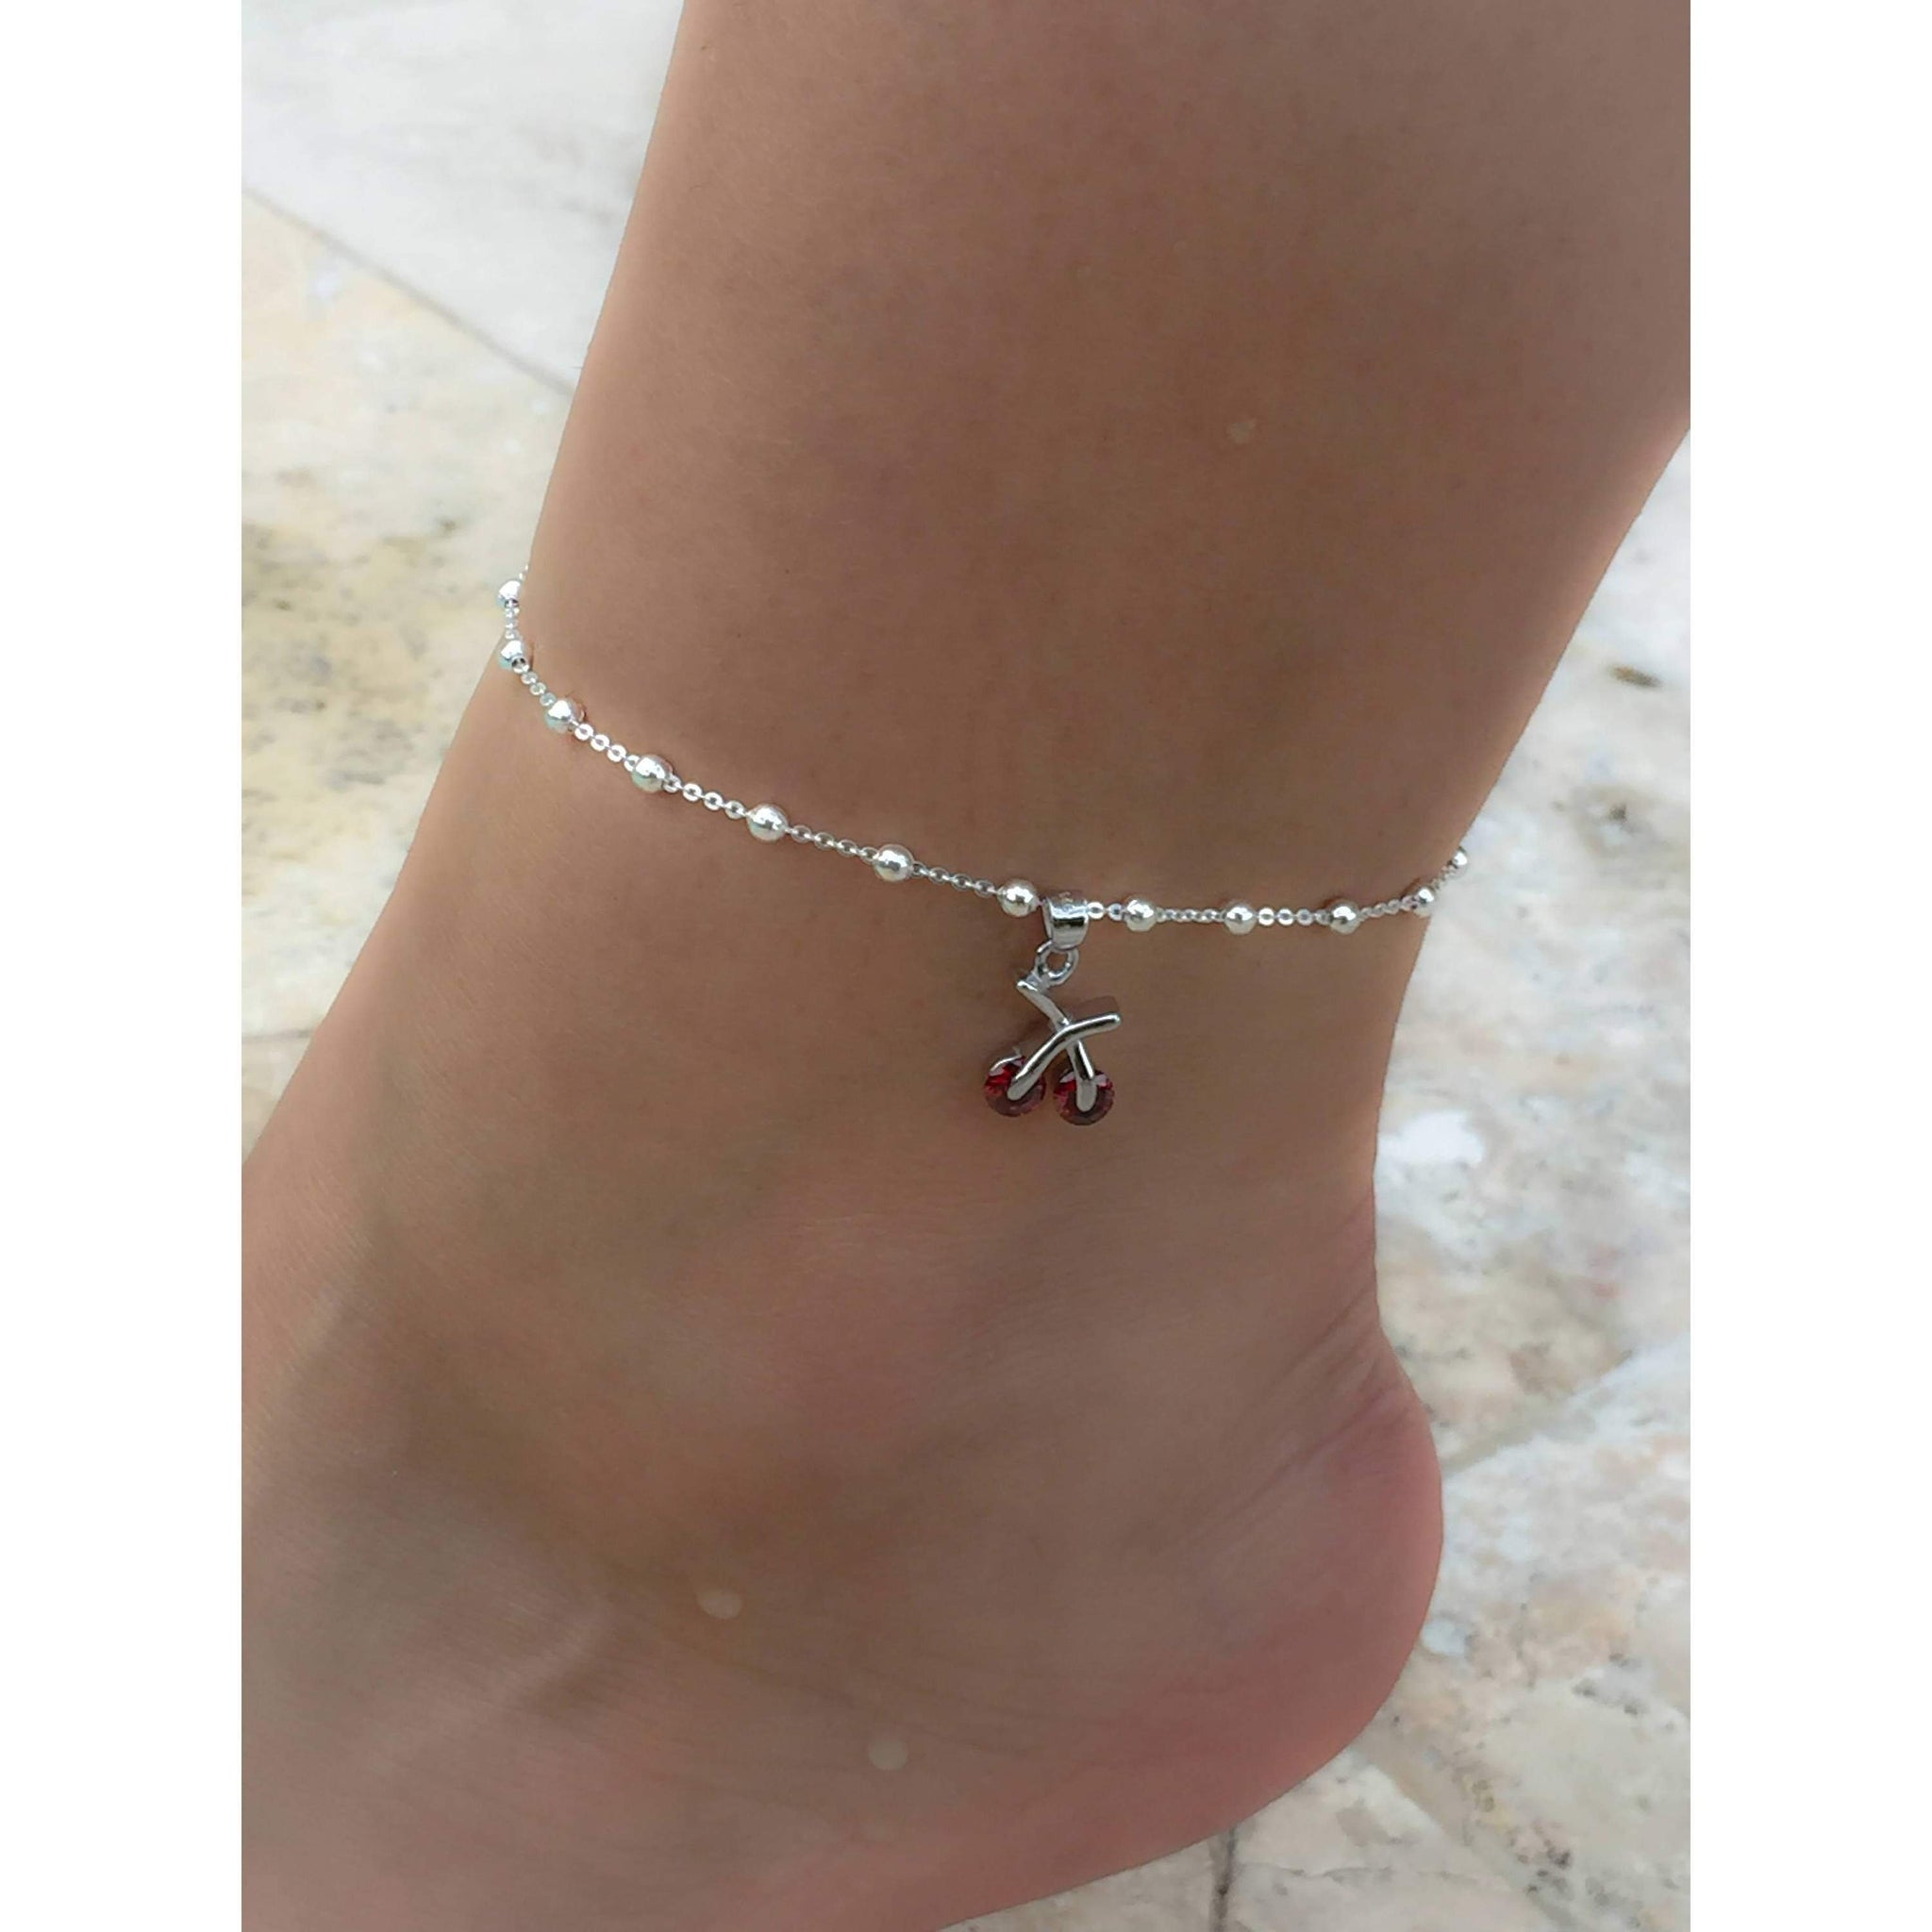 ankle from jewelry stainless in woman thin adjustable chain star for love size classic rose bracelets anklet bracelet gold item steel women gift anklets